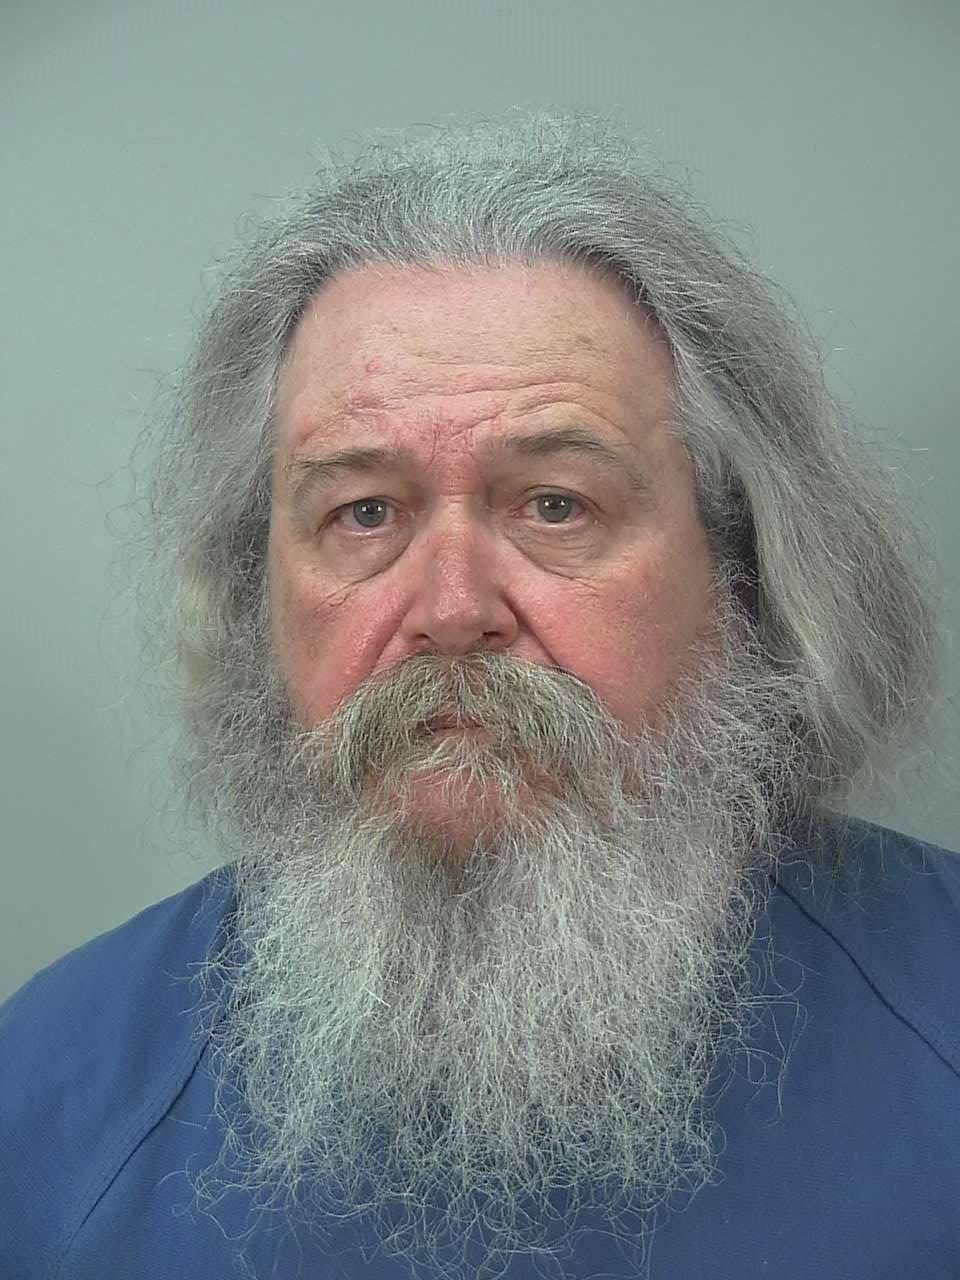 Barry M. Budris booking photo